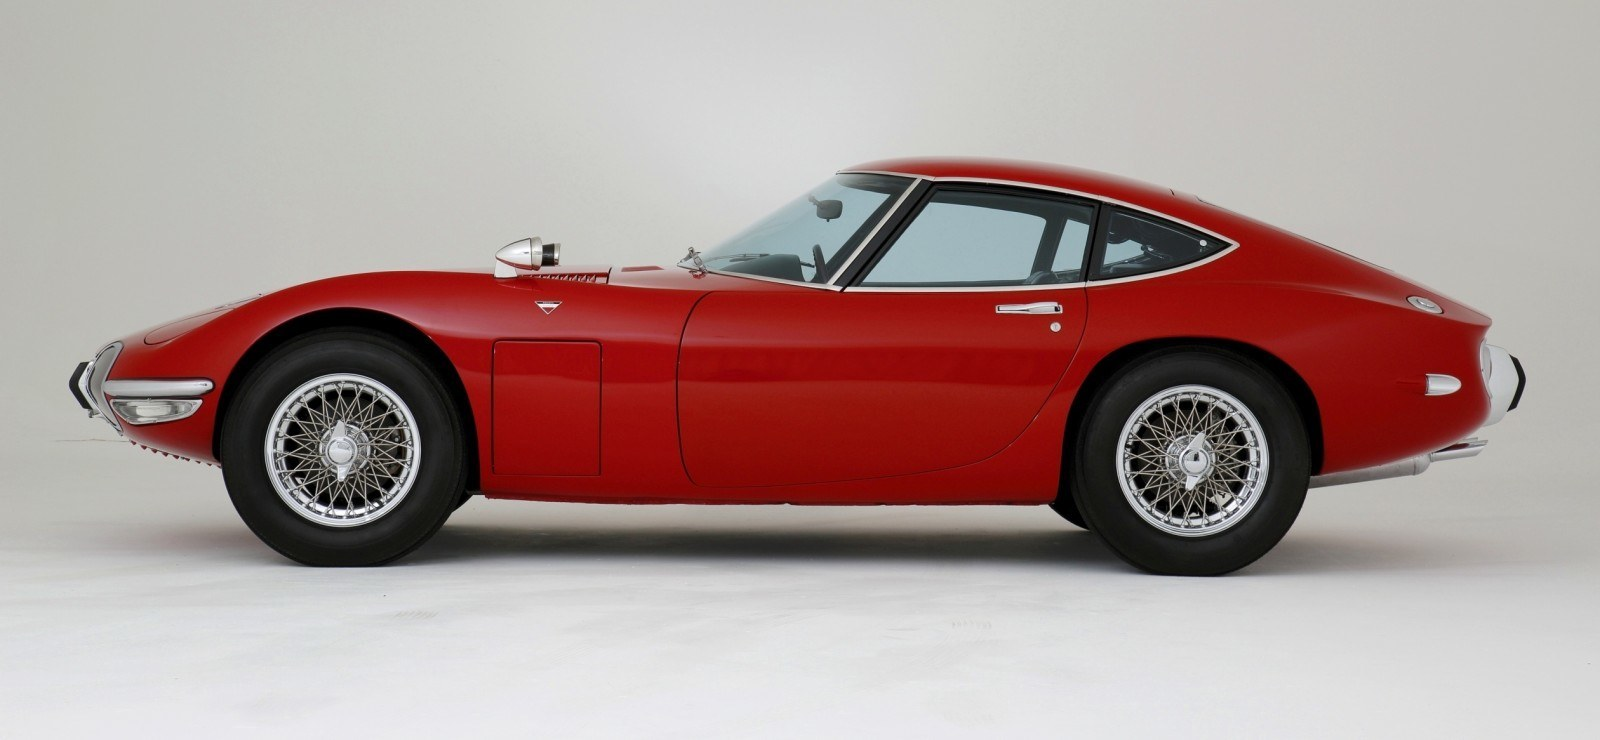 RM Auctions Monaco 2014 Highlights - 1968 Toyota 2000GT Joins Rare Million-Plus Japanese Car Club  5